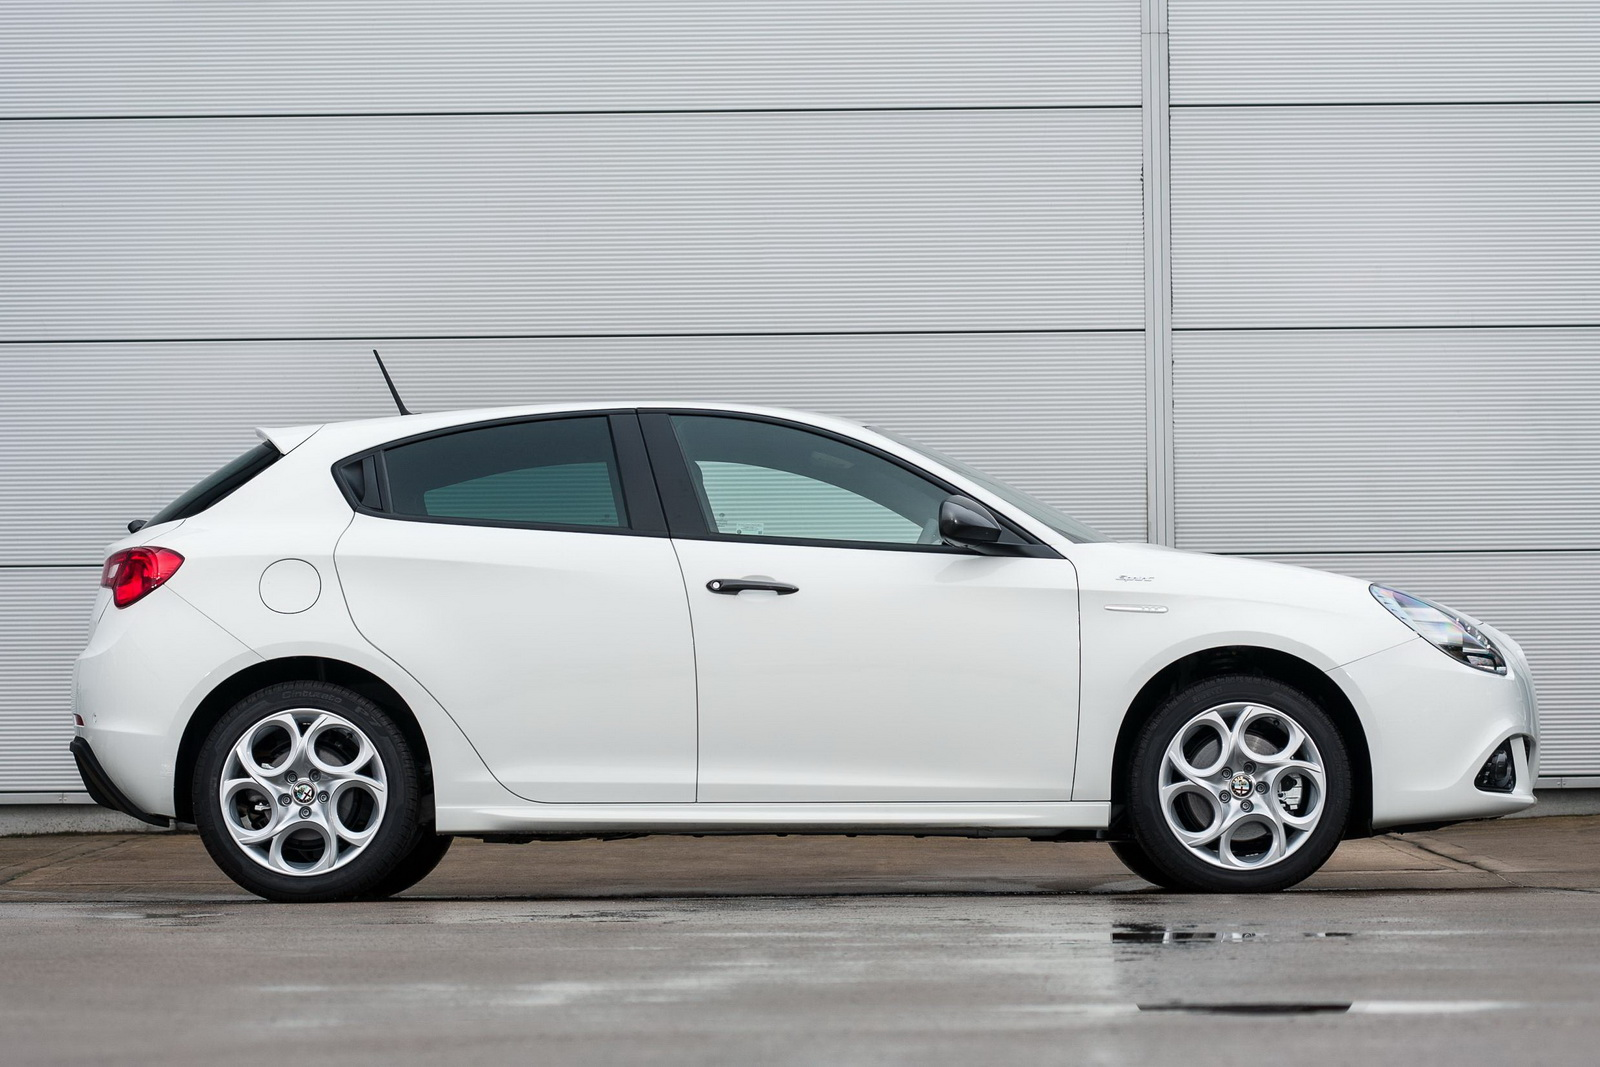 Alfa Romeo Giulietta Sprint Launched in the UK, Priced From £20,490